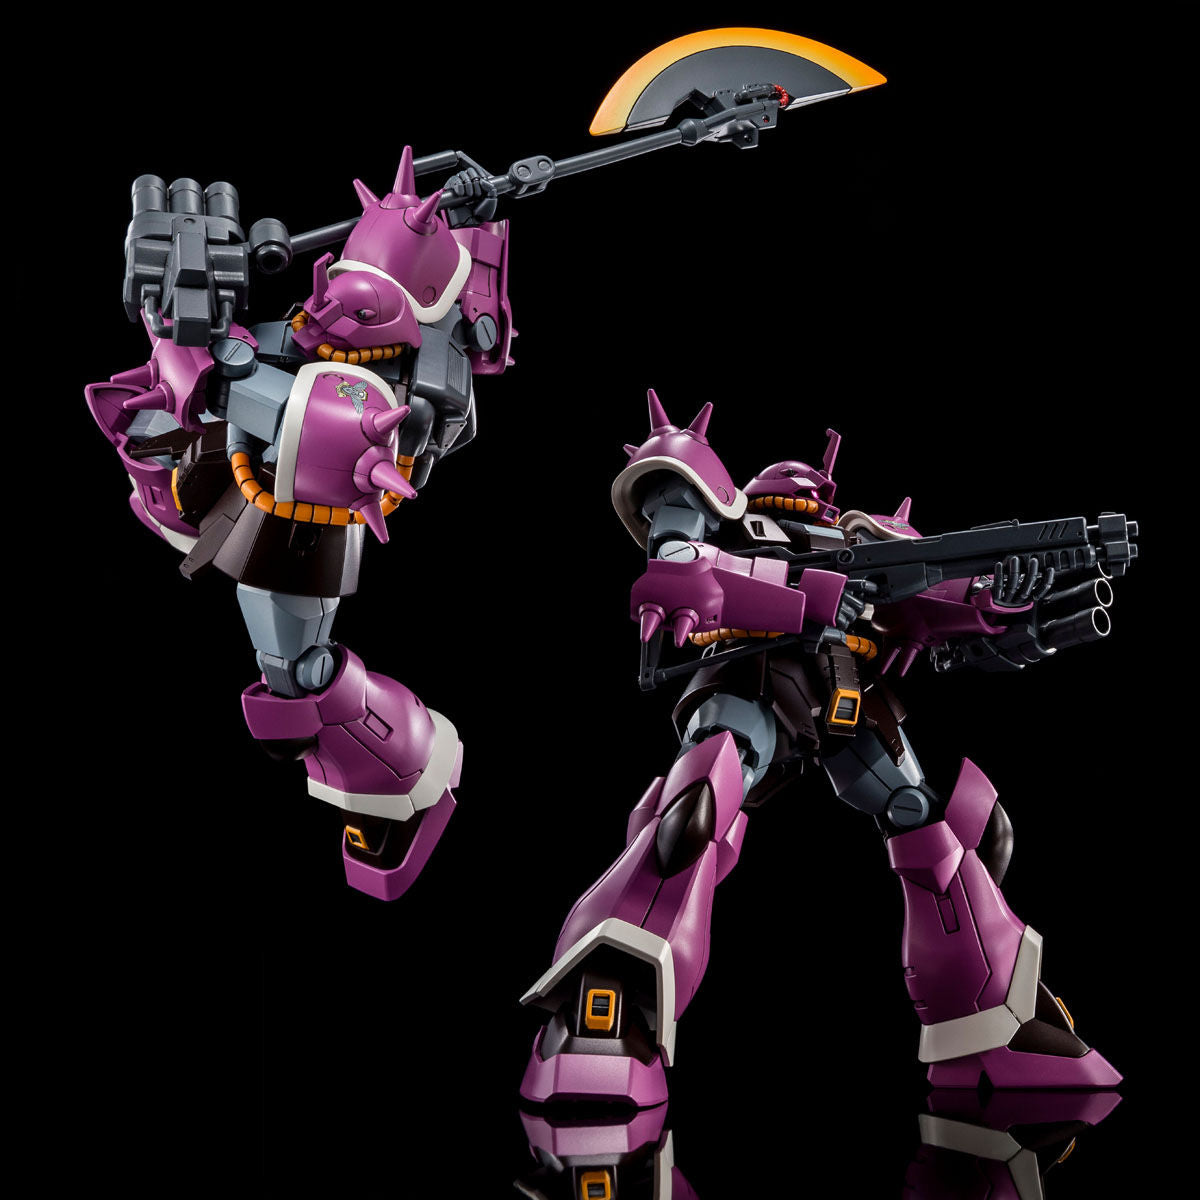 P-BANDAI: HGUC 1/144 EFREET (DOUG SCHNEID CUSTOM) [End of APRIL 2020]